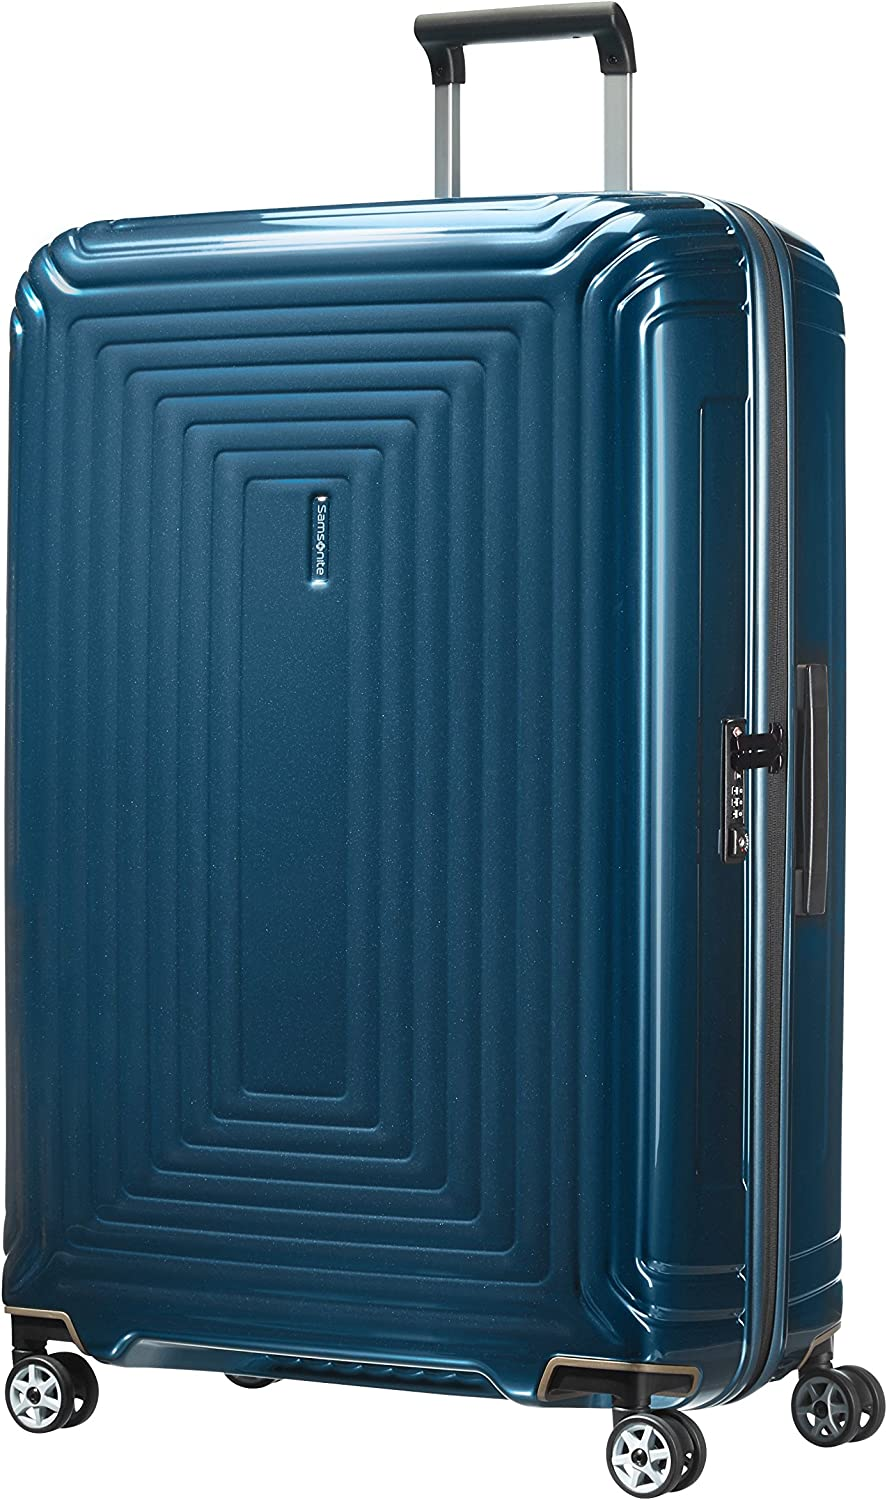 Samsonite Neopulse - Spinner XL Maleta, 81 cm, 124 L, Azul (Metallic Blue)